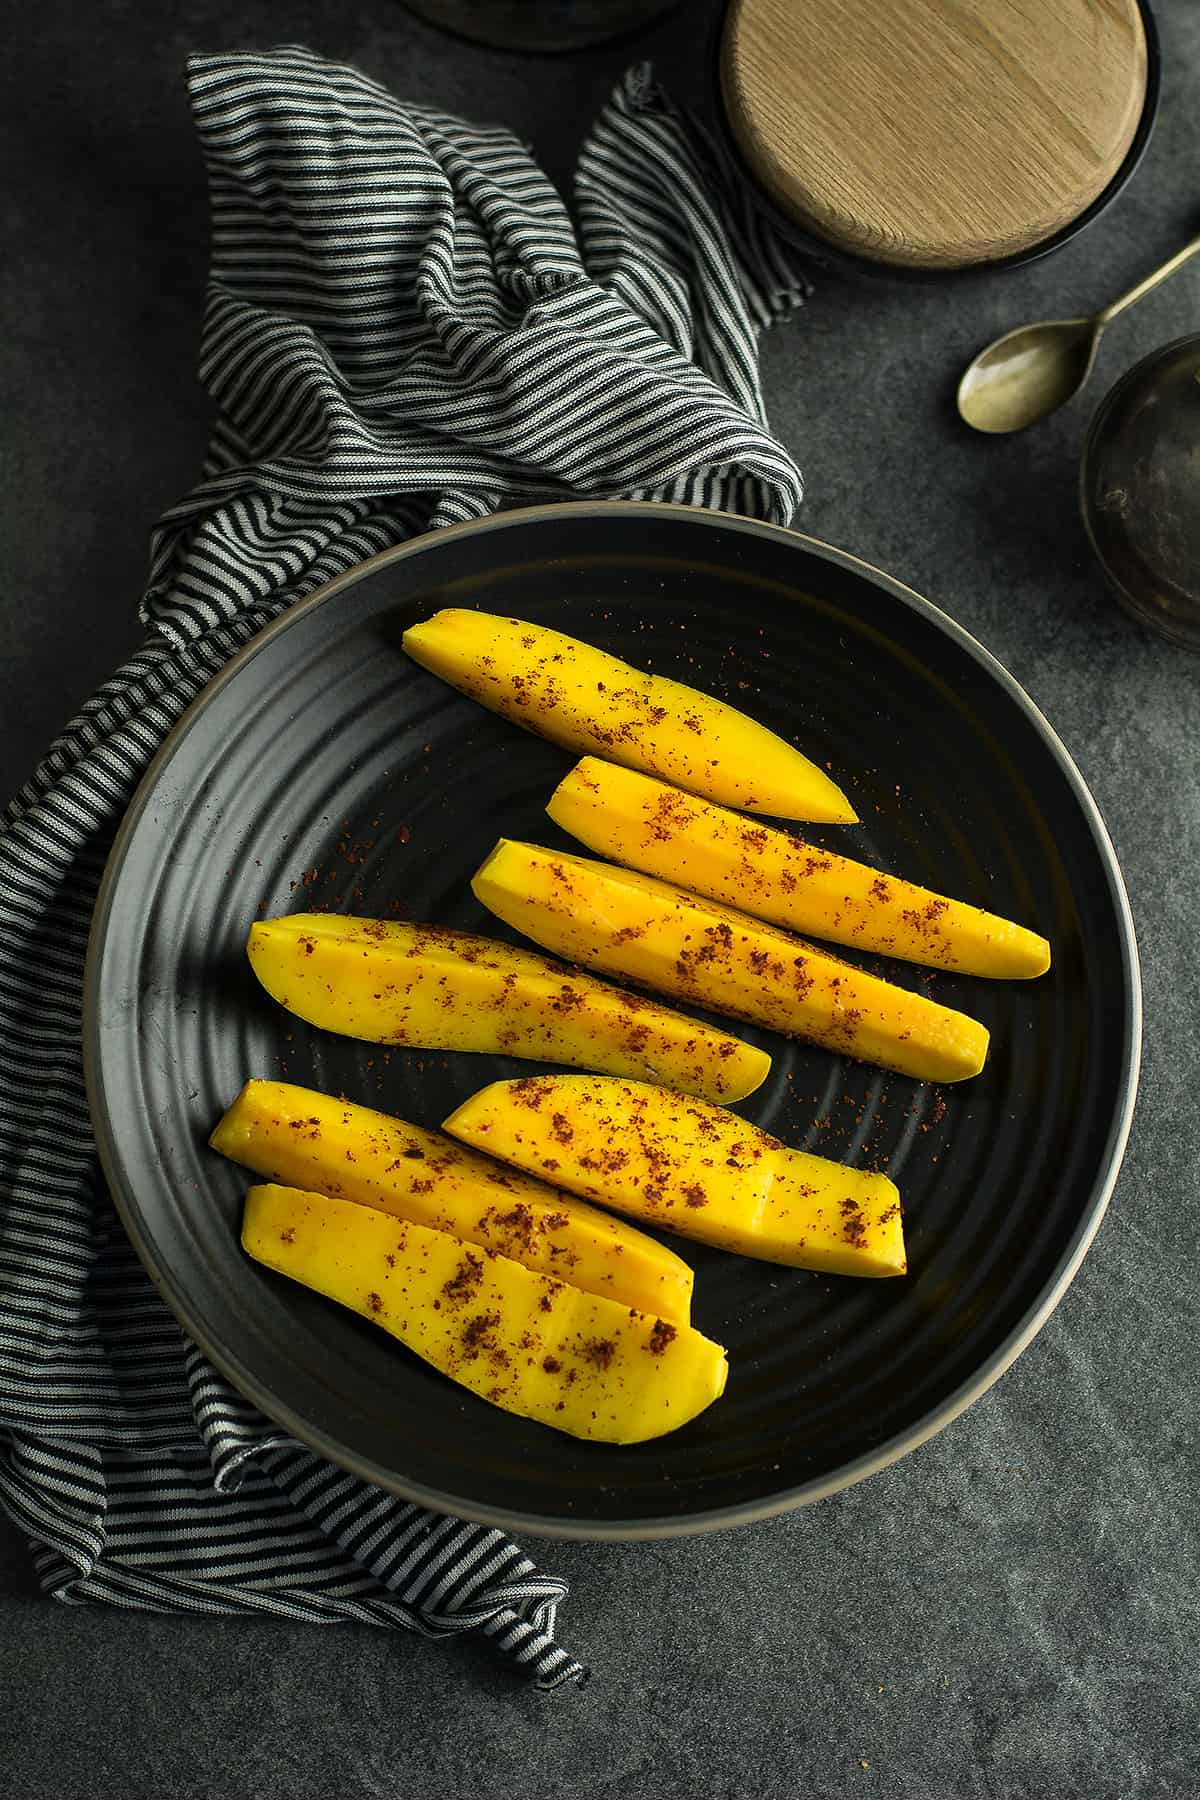 The simple recipe like this mango with chili powder does not require any kitchen skills. But gives you immense pleasure with its taste and flavor.